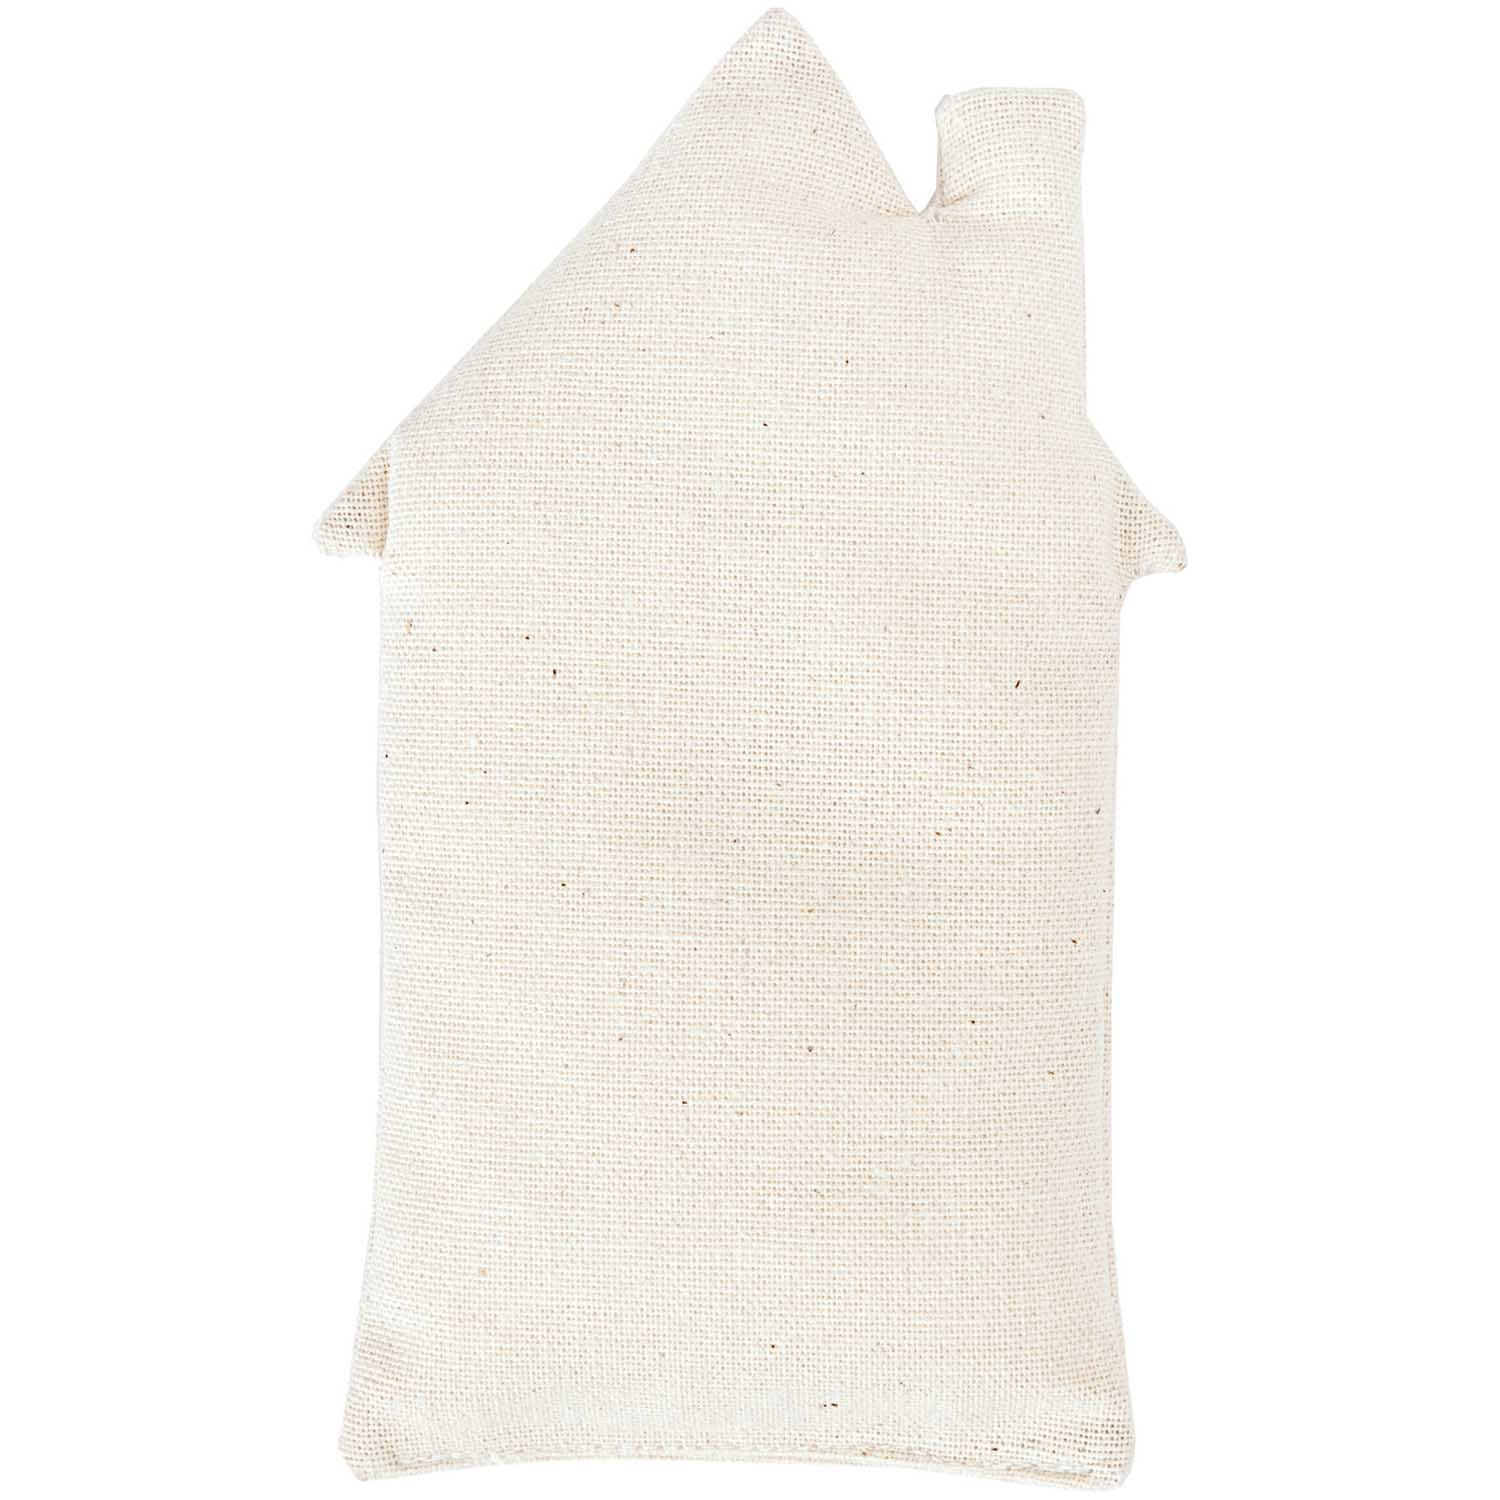 Rico NAY PATCHWORK FAMILY HOUSE 1 2D 9/14 CM